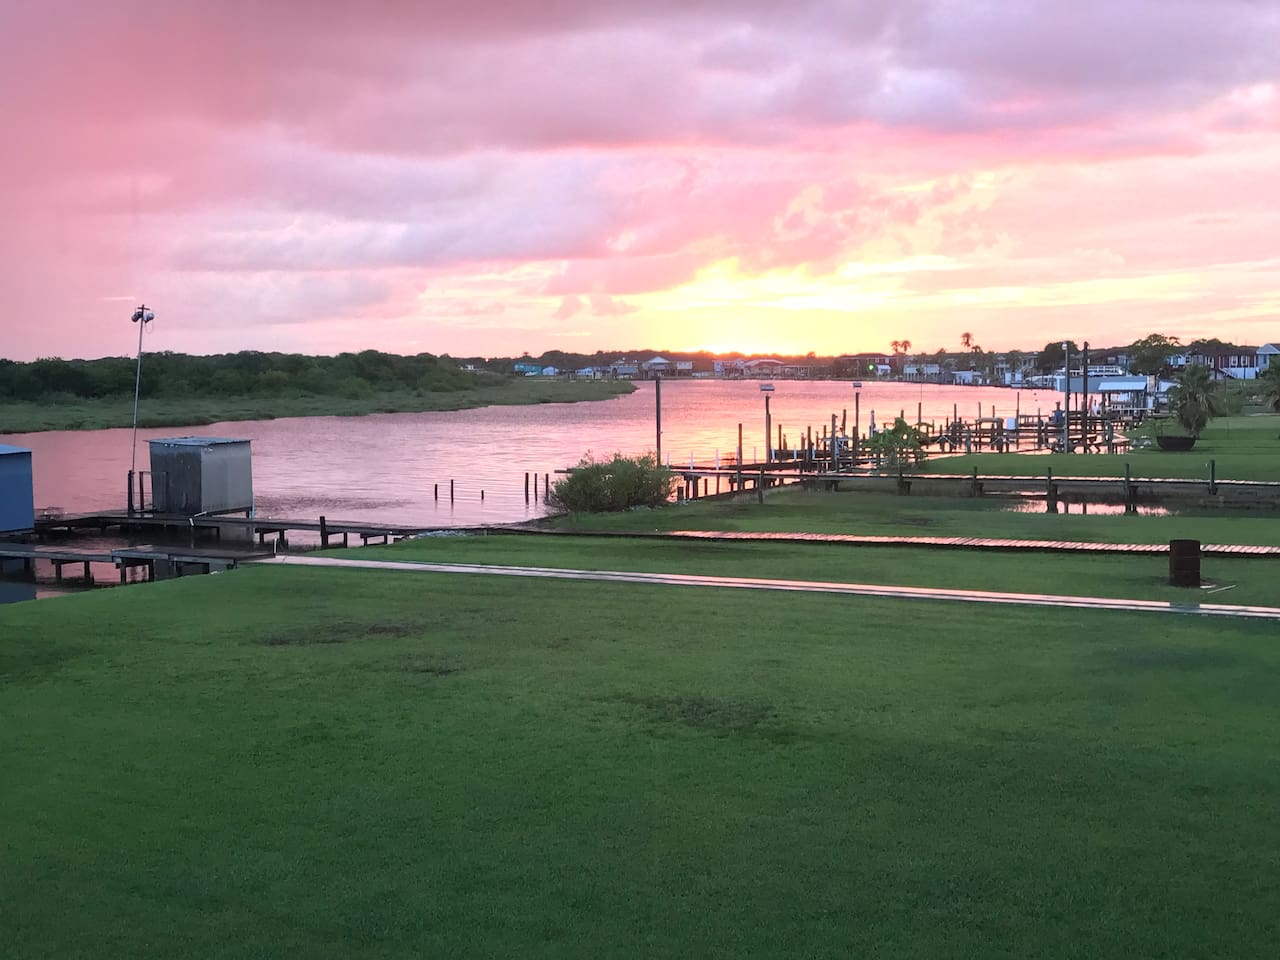 Beautiful sunset pic taken from the upstairs deck at Nauti Dreams! You'll also be able to experience magical sunsets like this during your stay at Nauti Dreams!